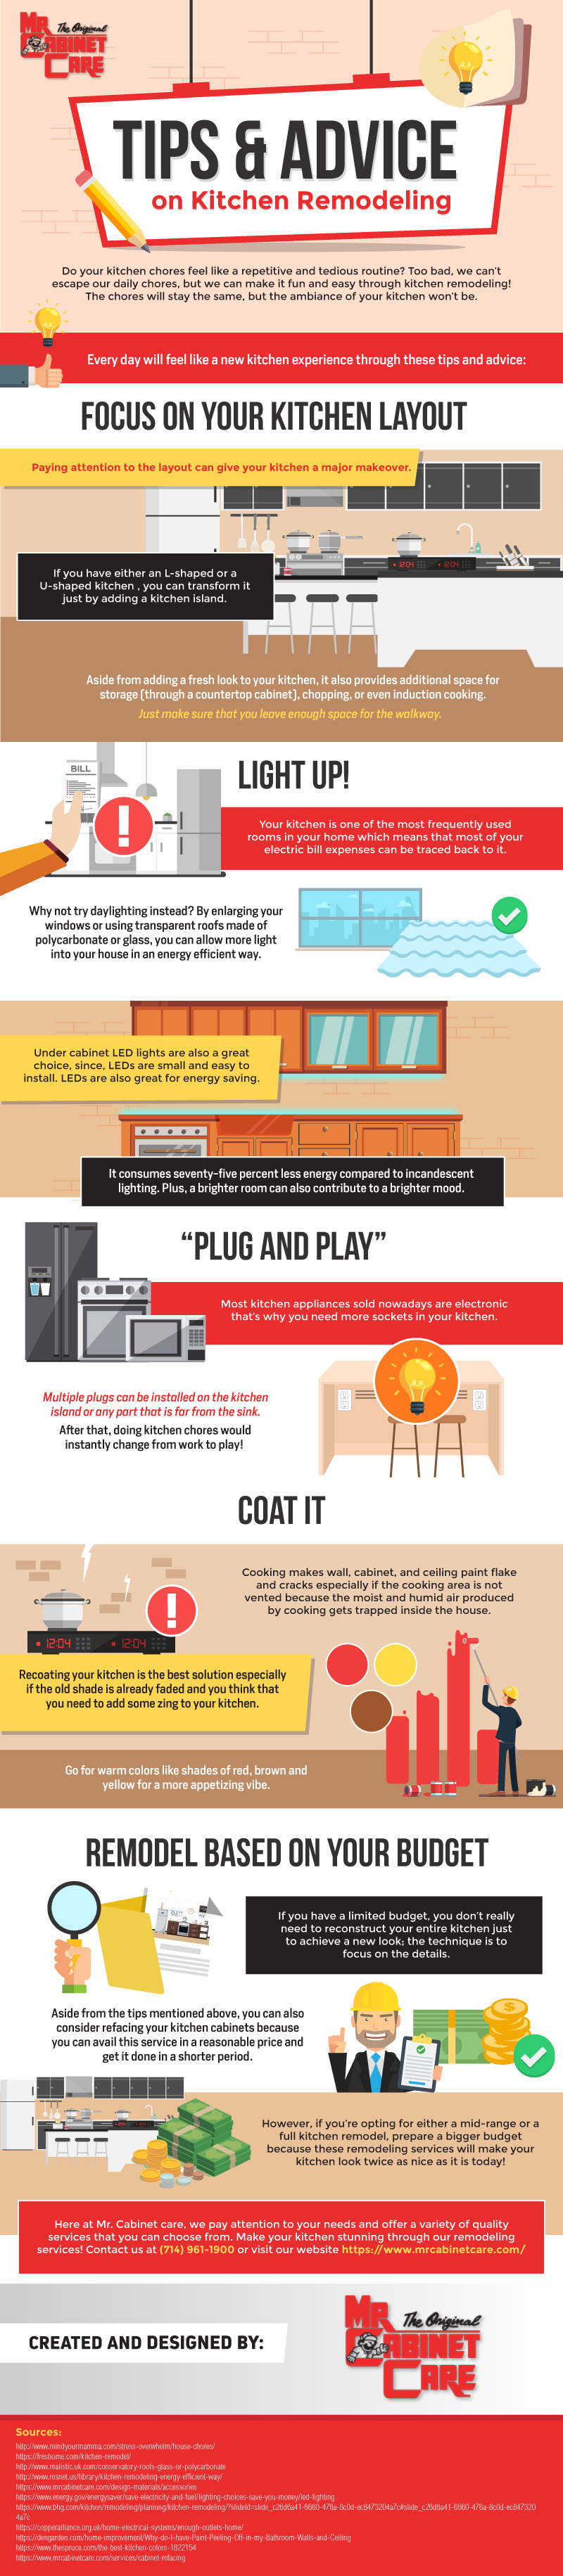 Tips & Advice on Kitchen Remodeling [Infographic]